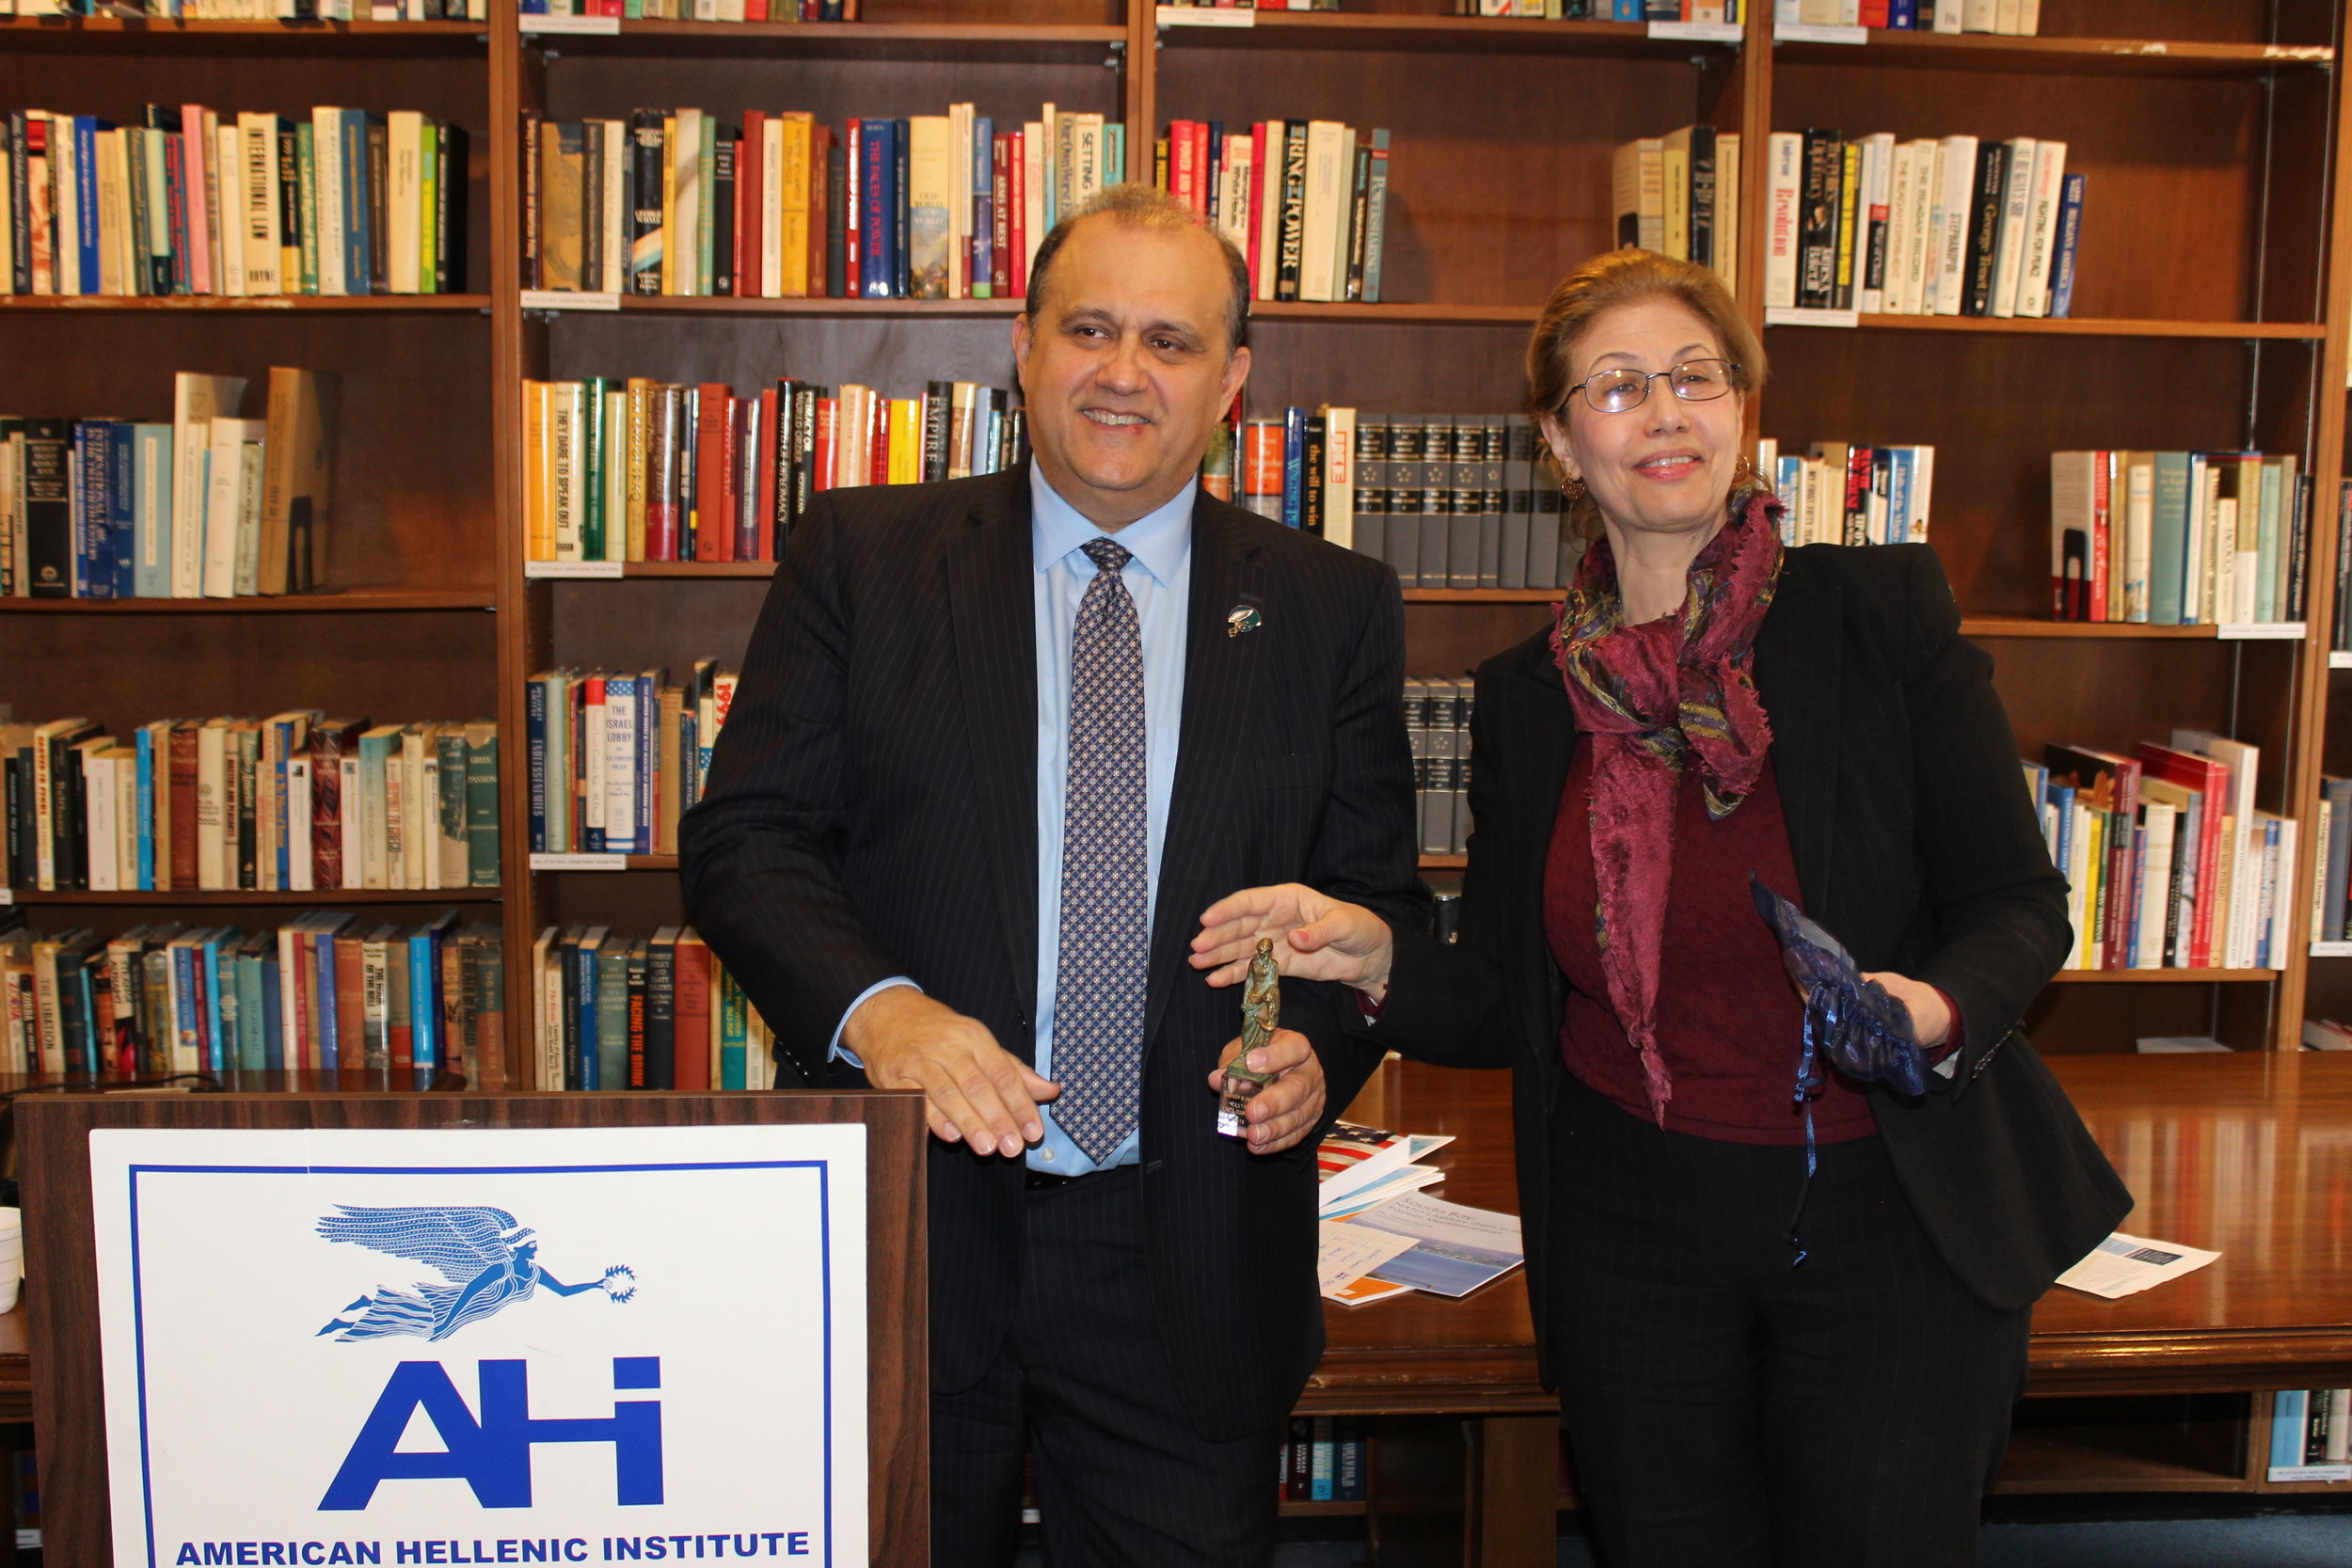 Professor Victoria Economou presents Nick Larigakis with a memento on behalf of the University of Piraeus.